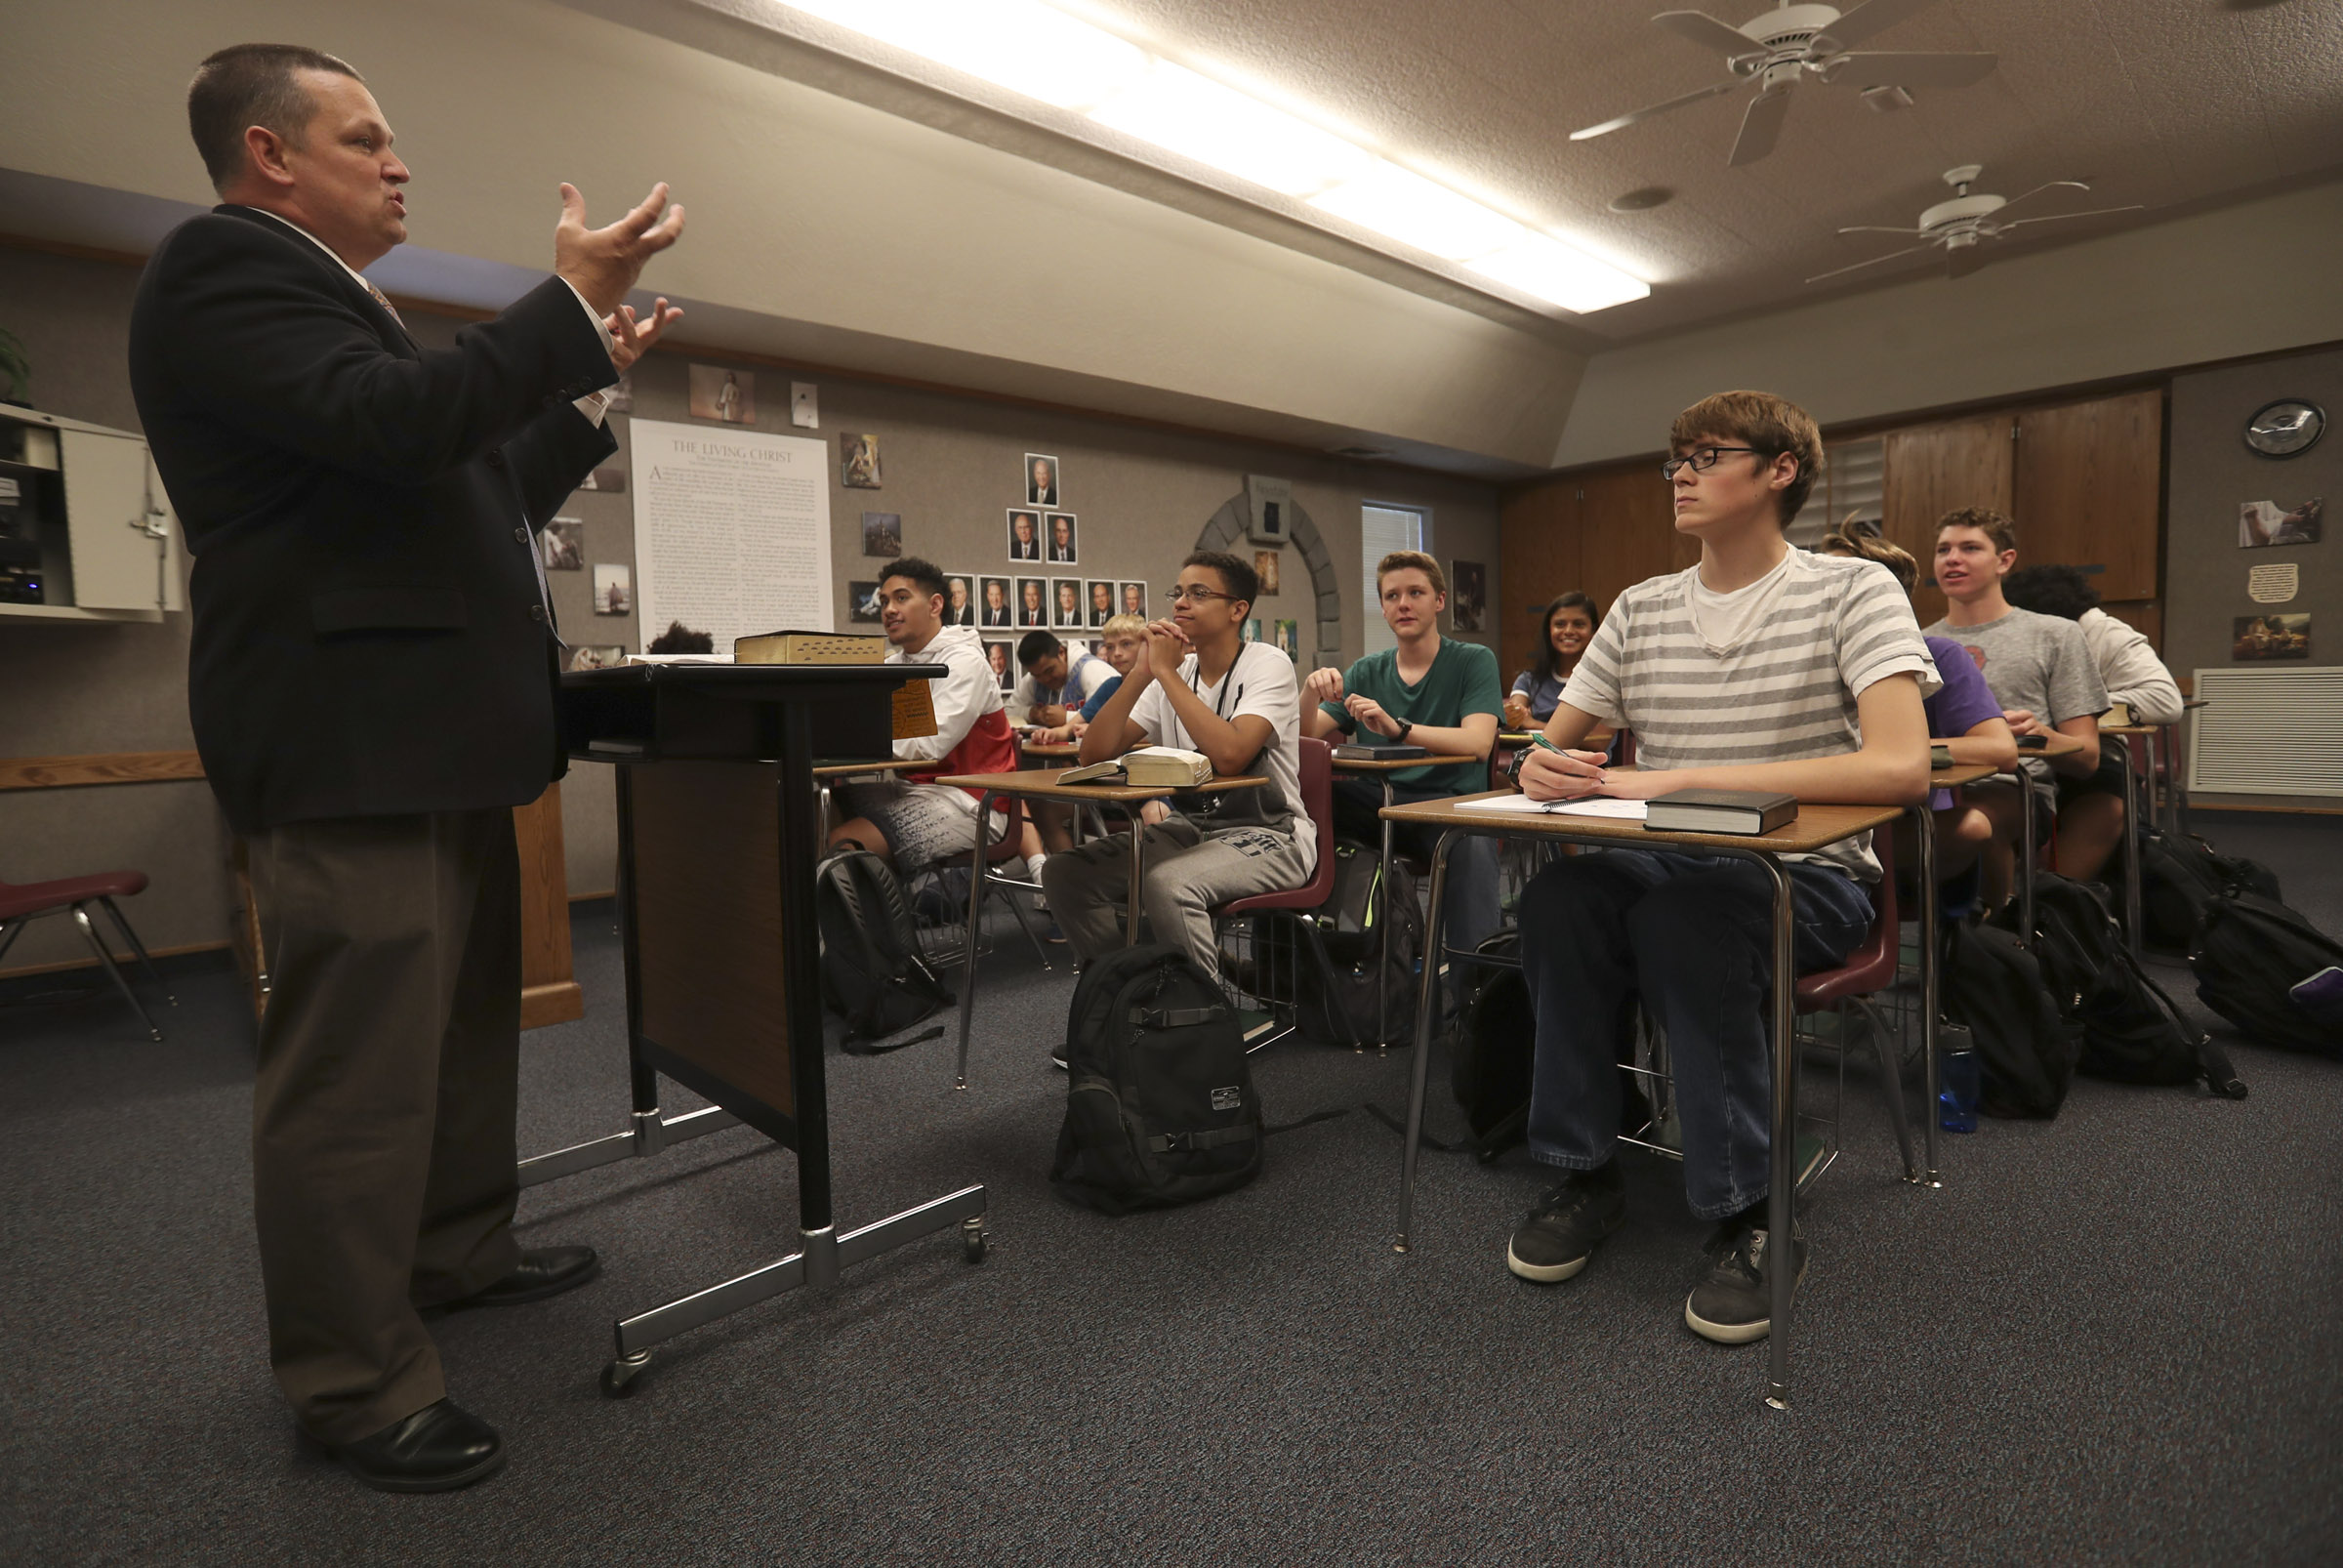 West High seminary principal Trent Smith talks with his students during an LDS seminary class at West High School in Salt Lake City on Monday, Sept. 17, 2018.